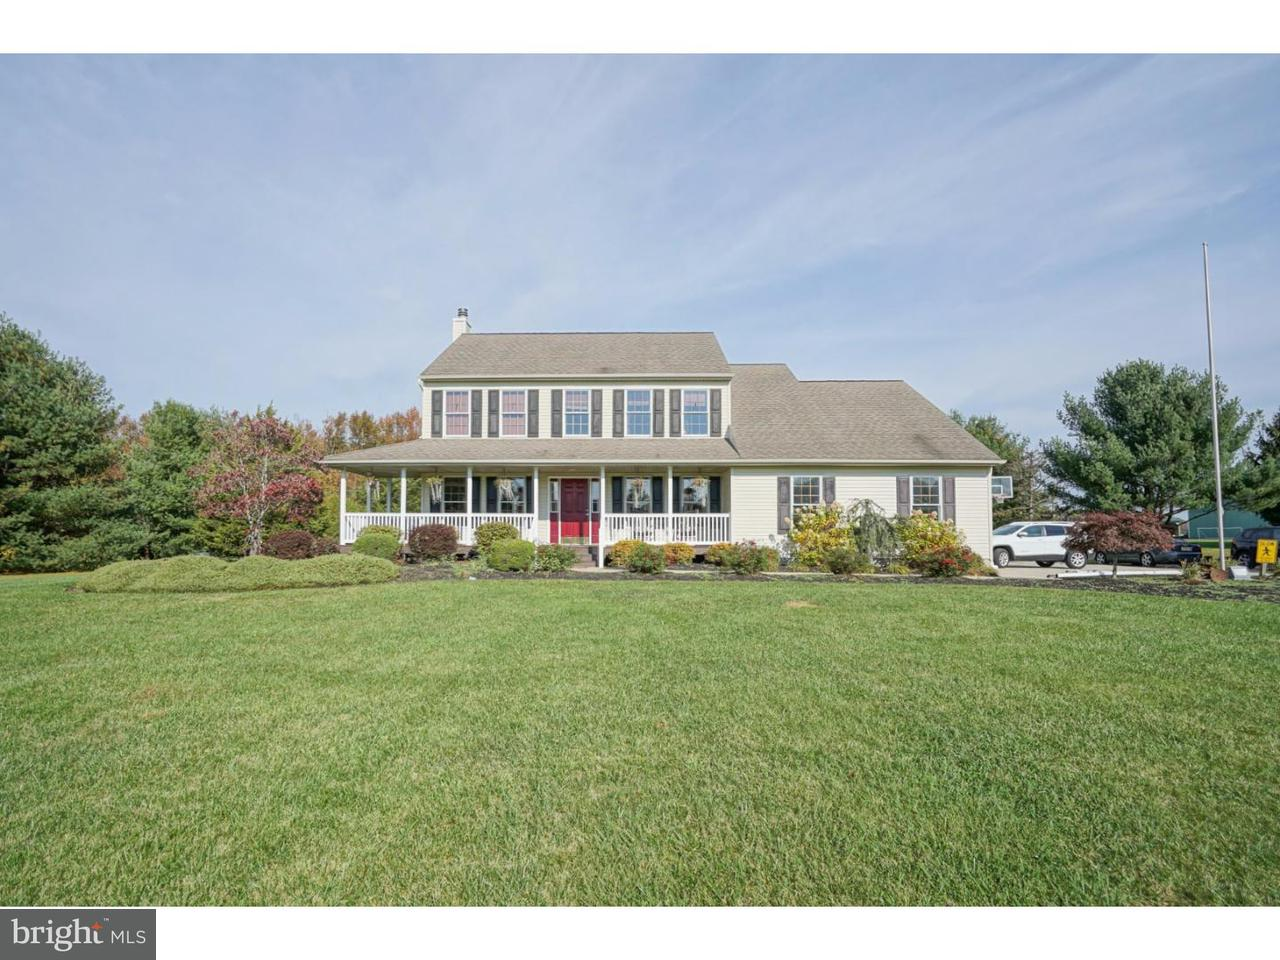 Single Family Home for Sale at 100 UPPER NECK Road Elmer, New Jersey 08318 United States